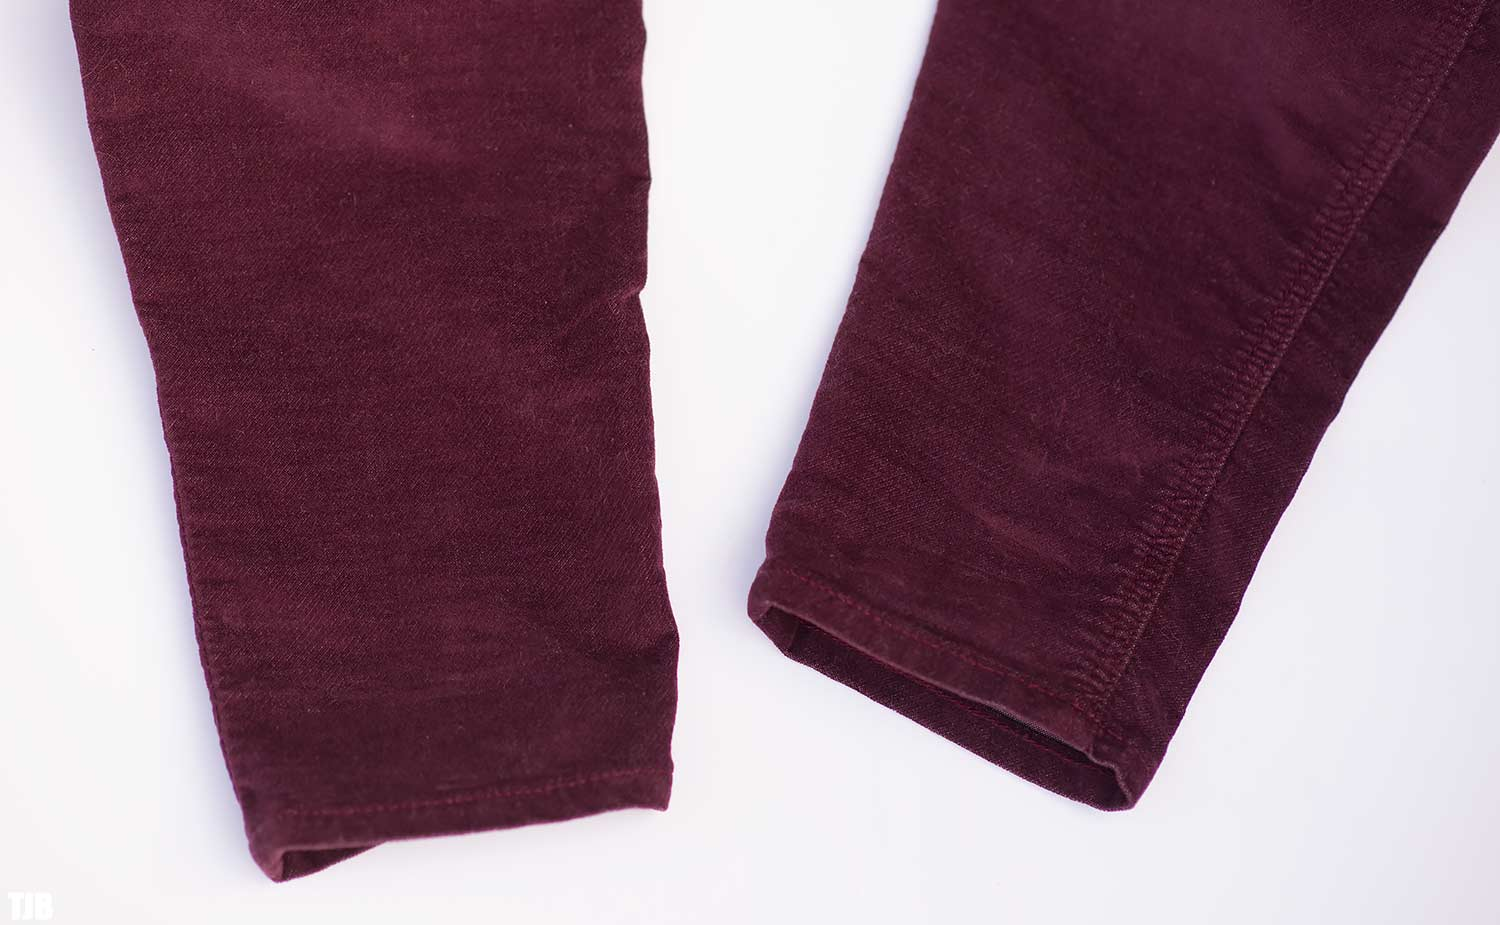 mcguire-denim-newton-exposed-button-skinny-pants-in-pinot-review-6